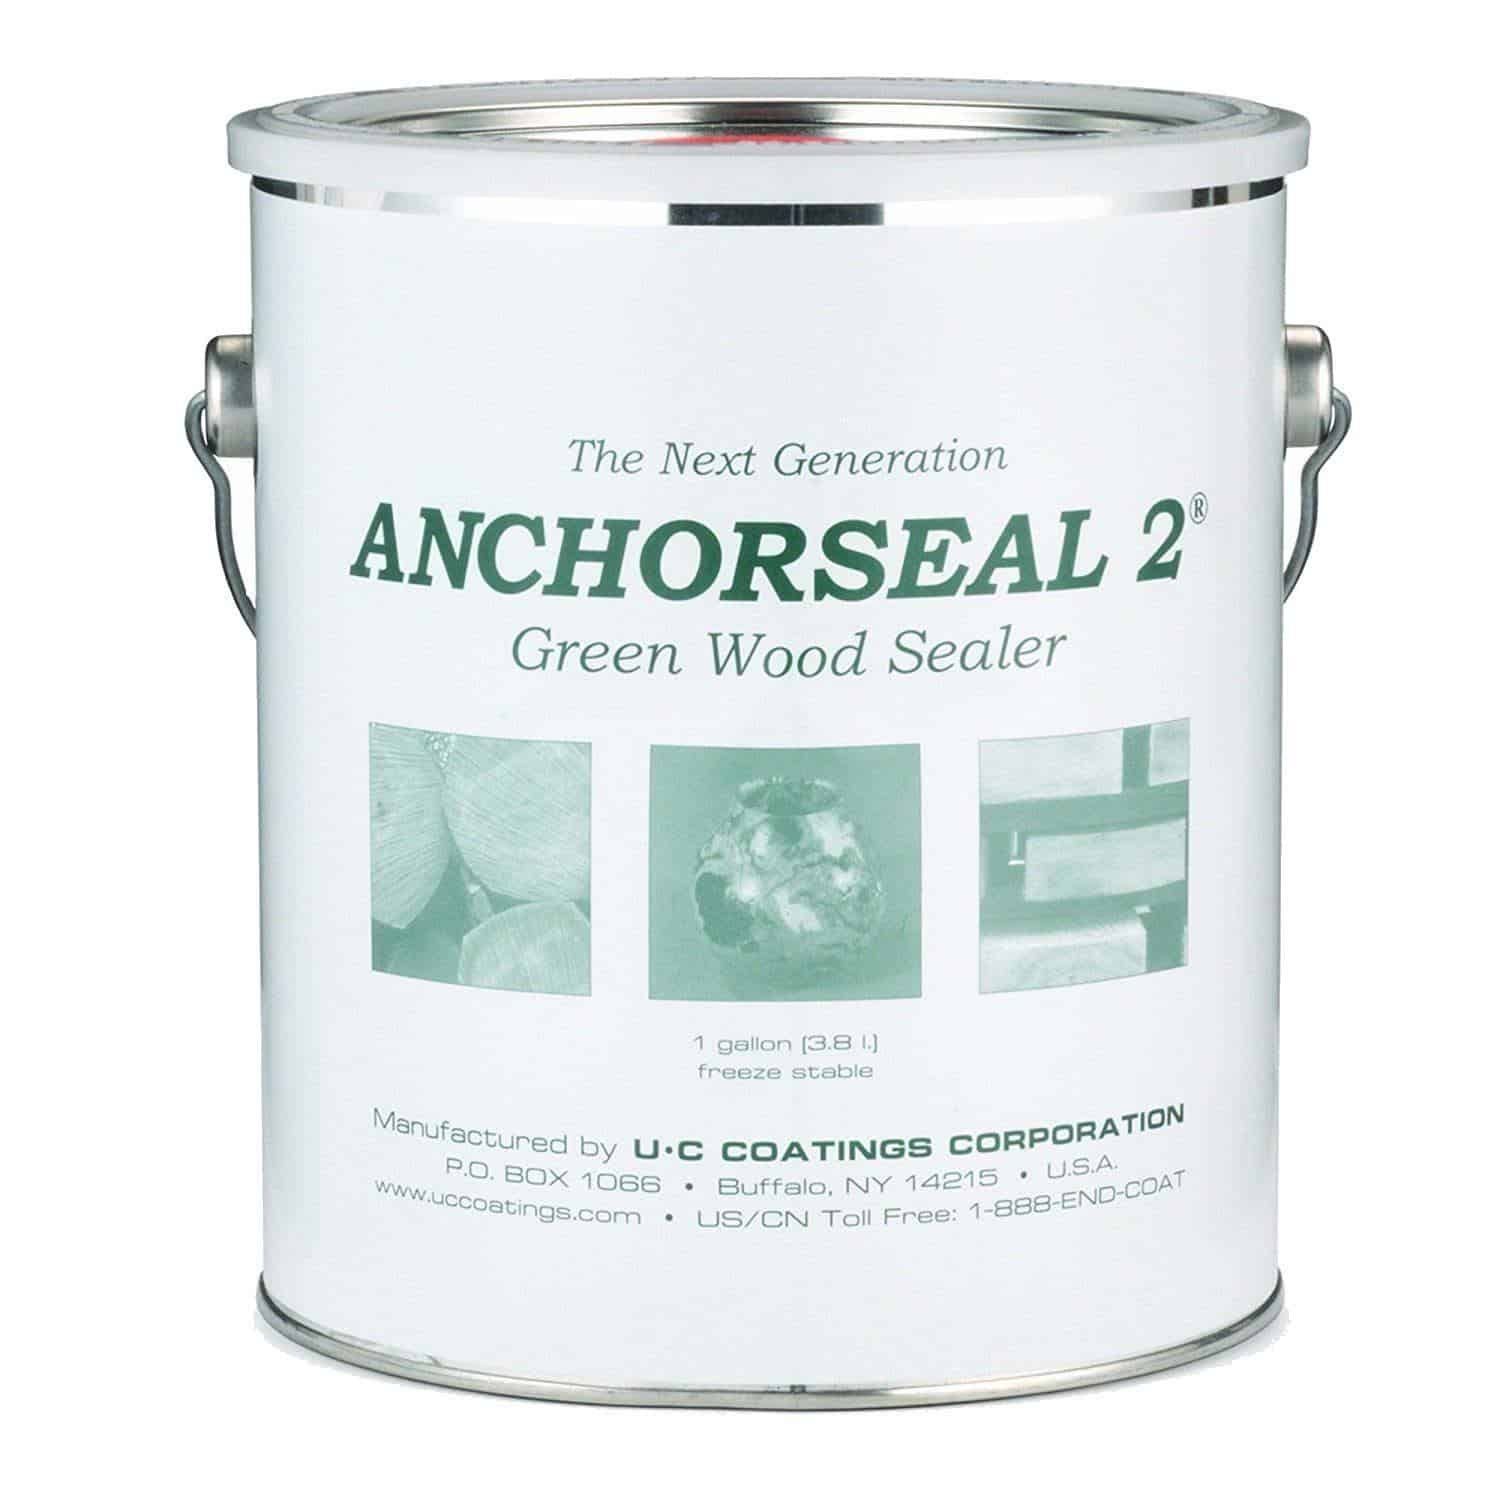 Anchorseal 2 Green Wood Sealer